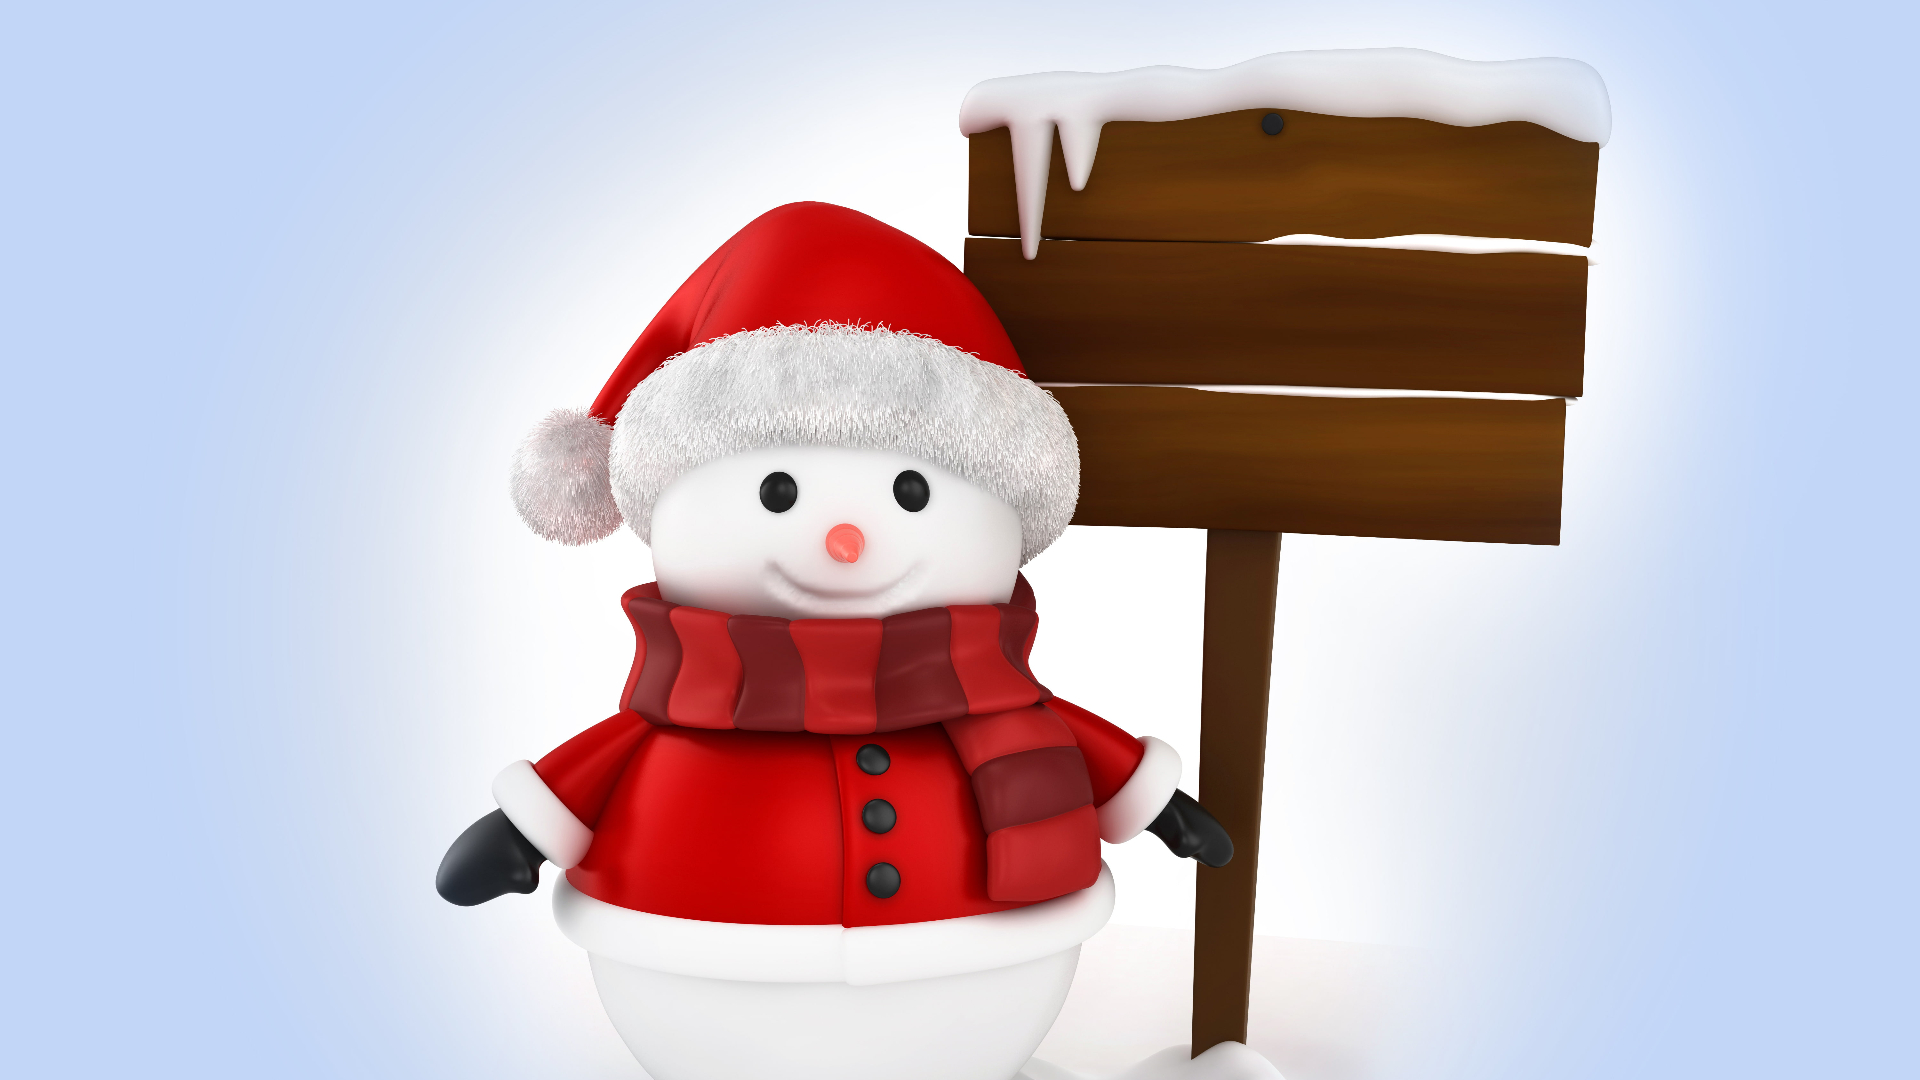 snowman backgrounds free